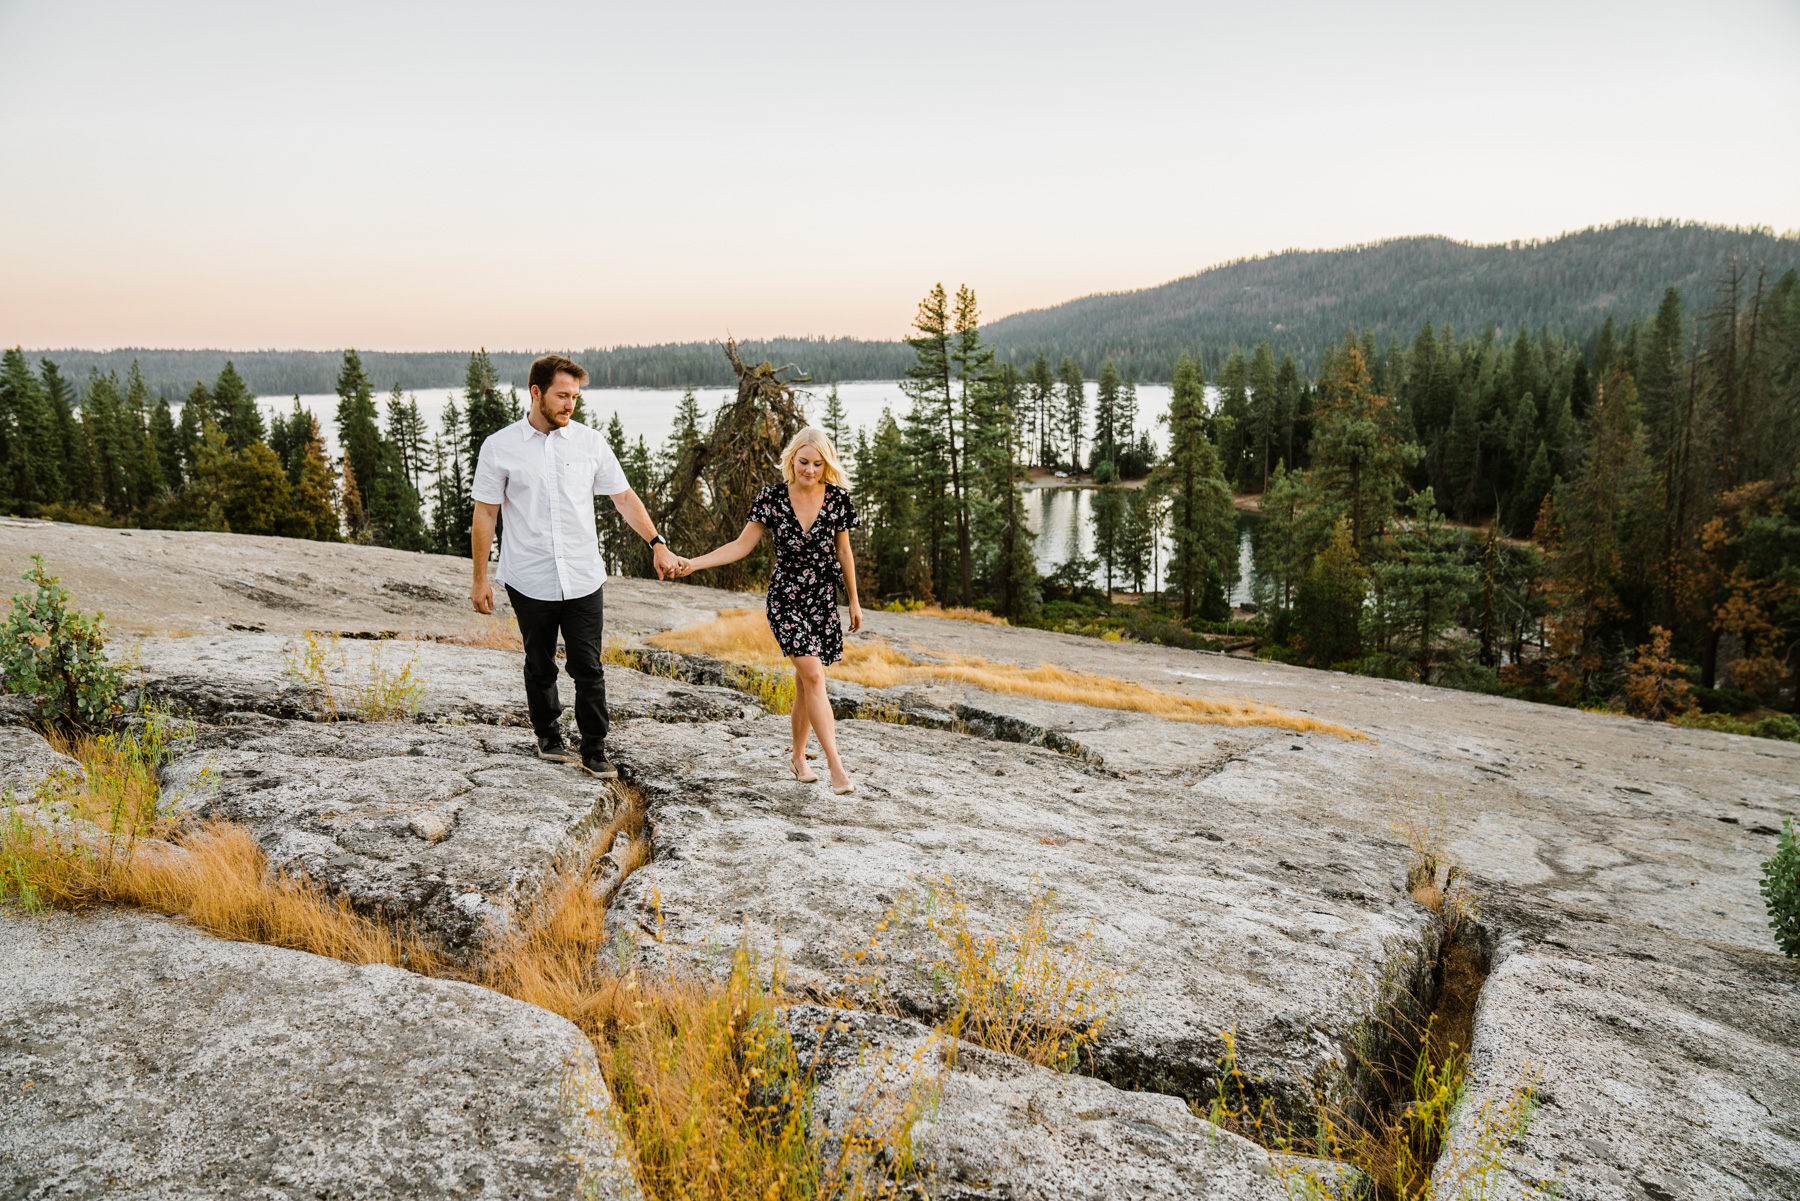 Shaver Lake Engagement Portraits - Meghan and Clay -  by Bessie Young Photography 2018 A7R2-244.jpg